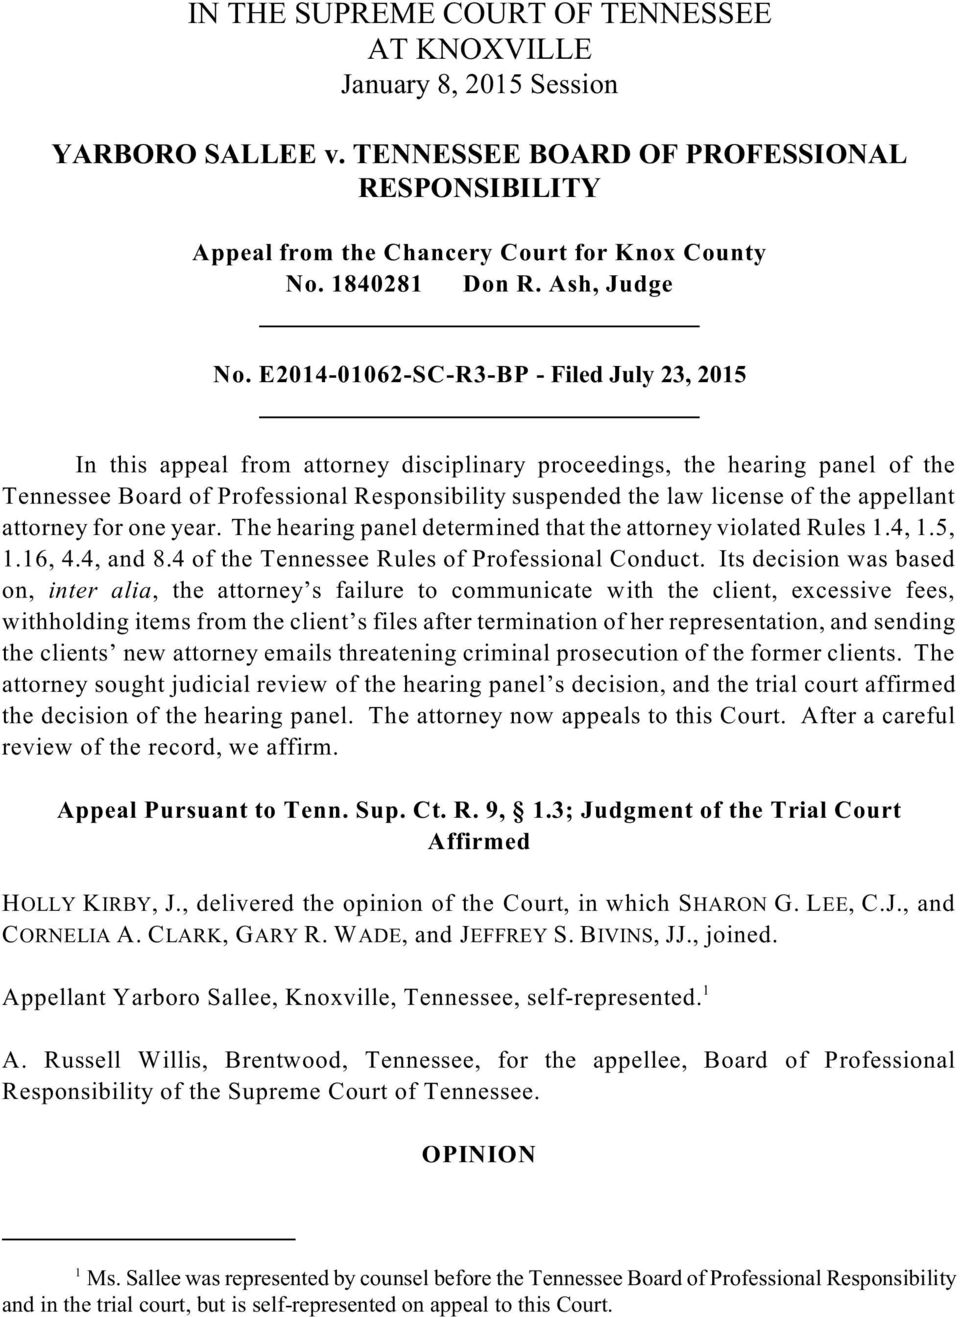 E2014-01062-SC-R3-BP - Filed July 23, 2015 In this appeal from attorney disciplinary proceedings, the hearing panel of the Tennessee Board of Professional Responsibility suspended the law license of